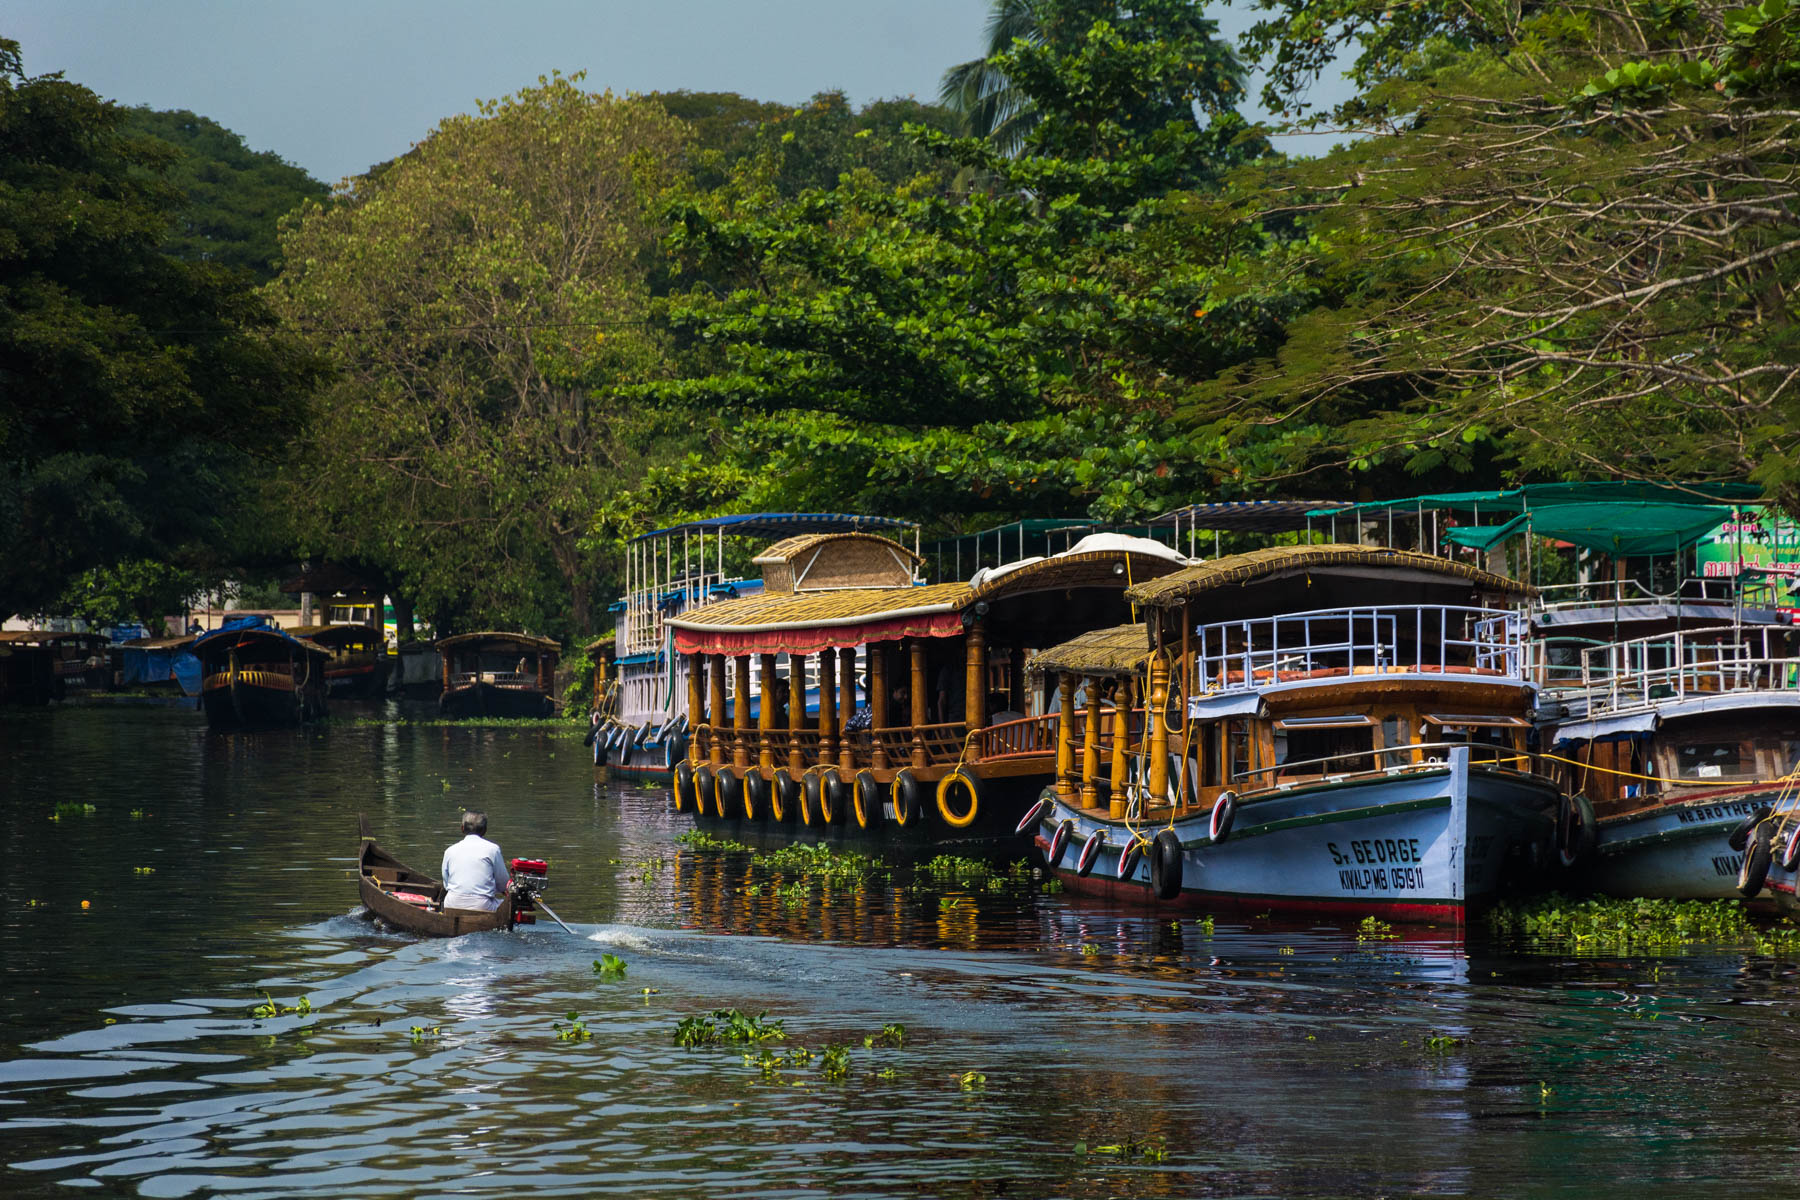 Tourist boats in Alleppey (Alappuzha), Kerala, India - Lost With Purpose